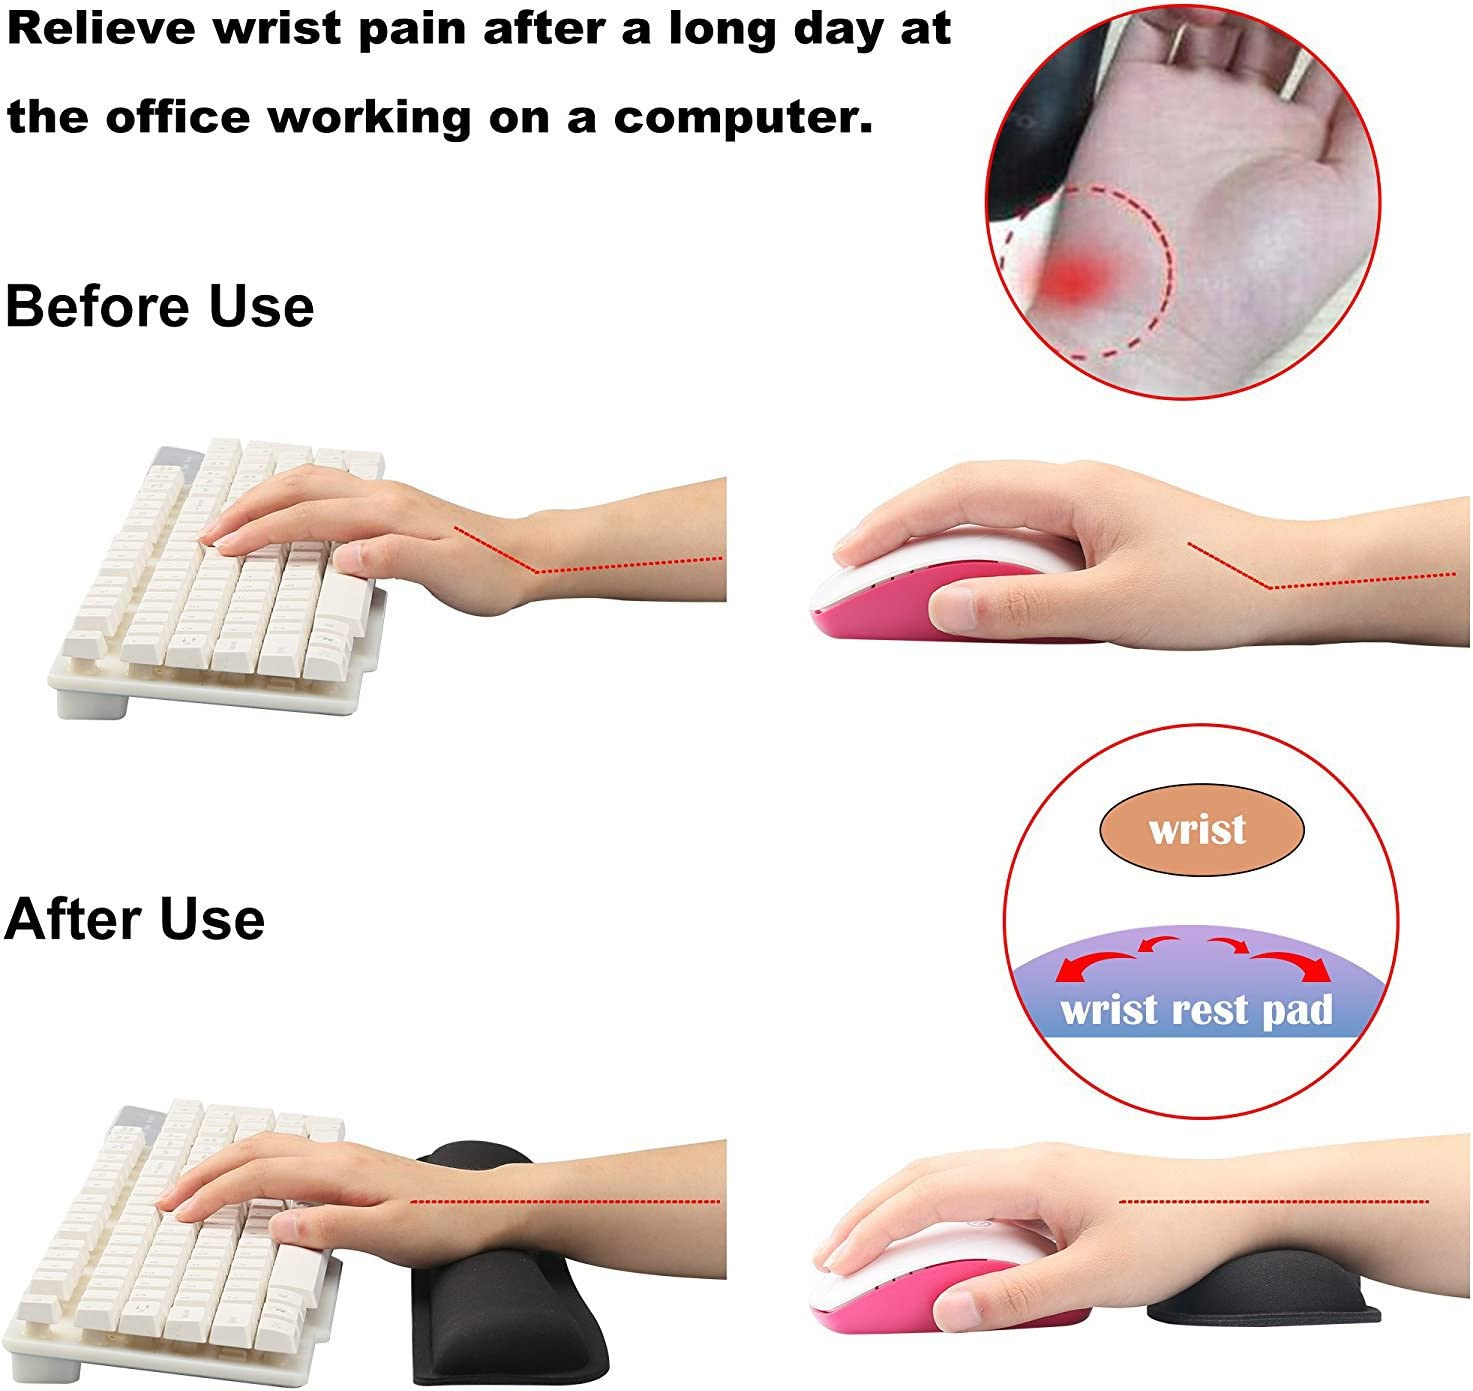 Durable /& Comfortable fosa Gaming Wrist Pad//Rest Memory Foam Keyboard Wrist Carpal Rest Pad Home Computer Laptop Mac for Easy Typing /& Pain Relief Ergonomic Support Office